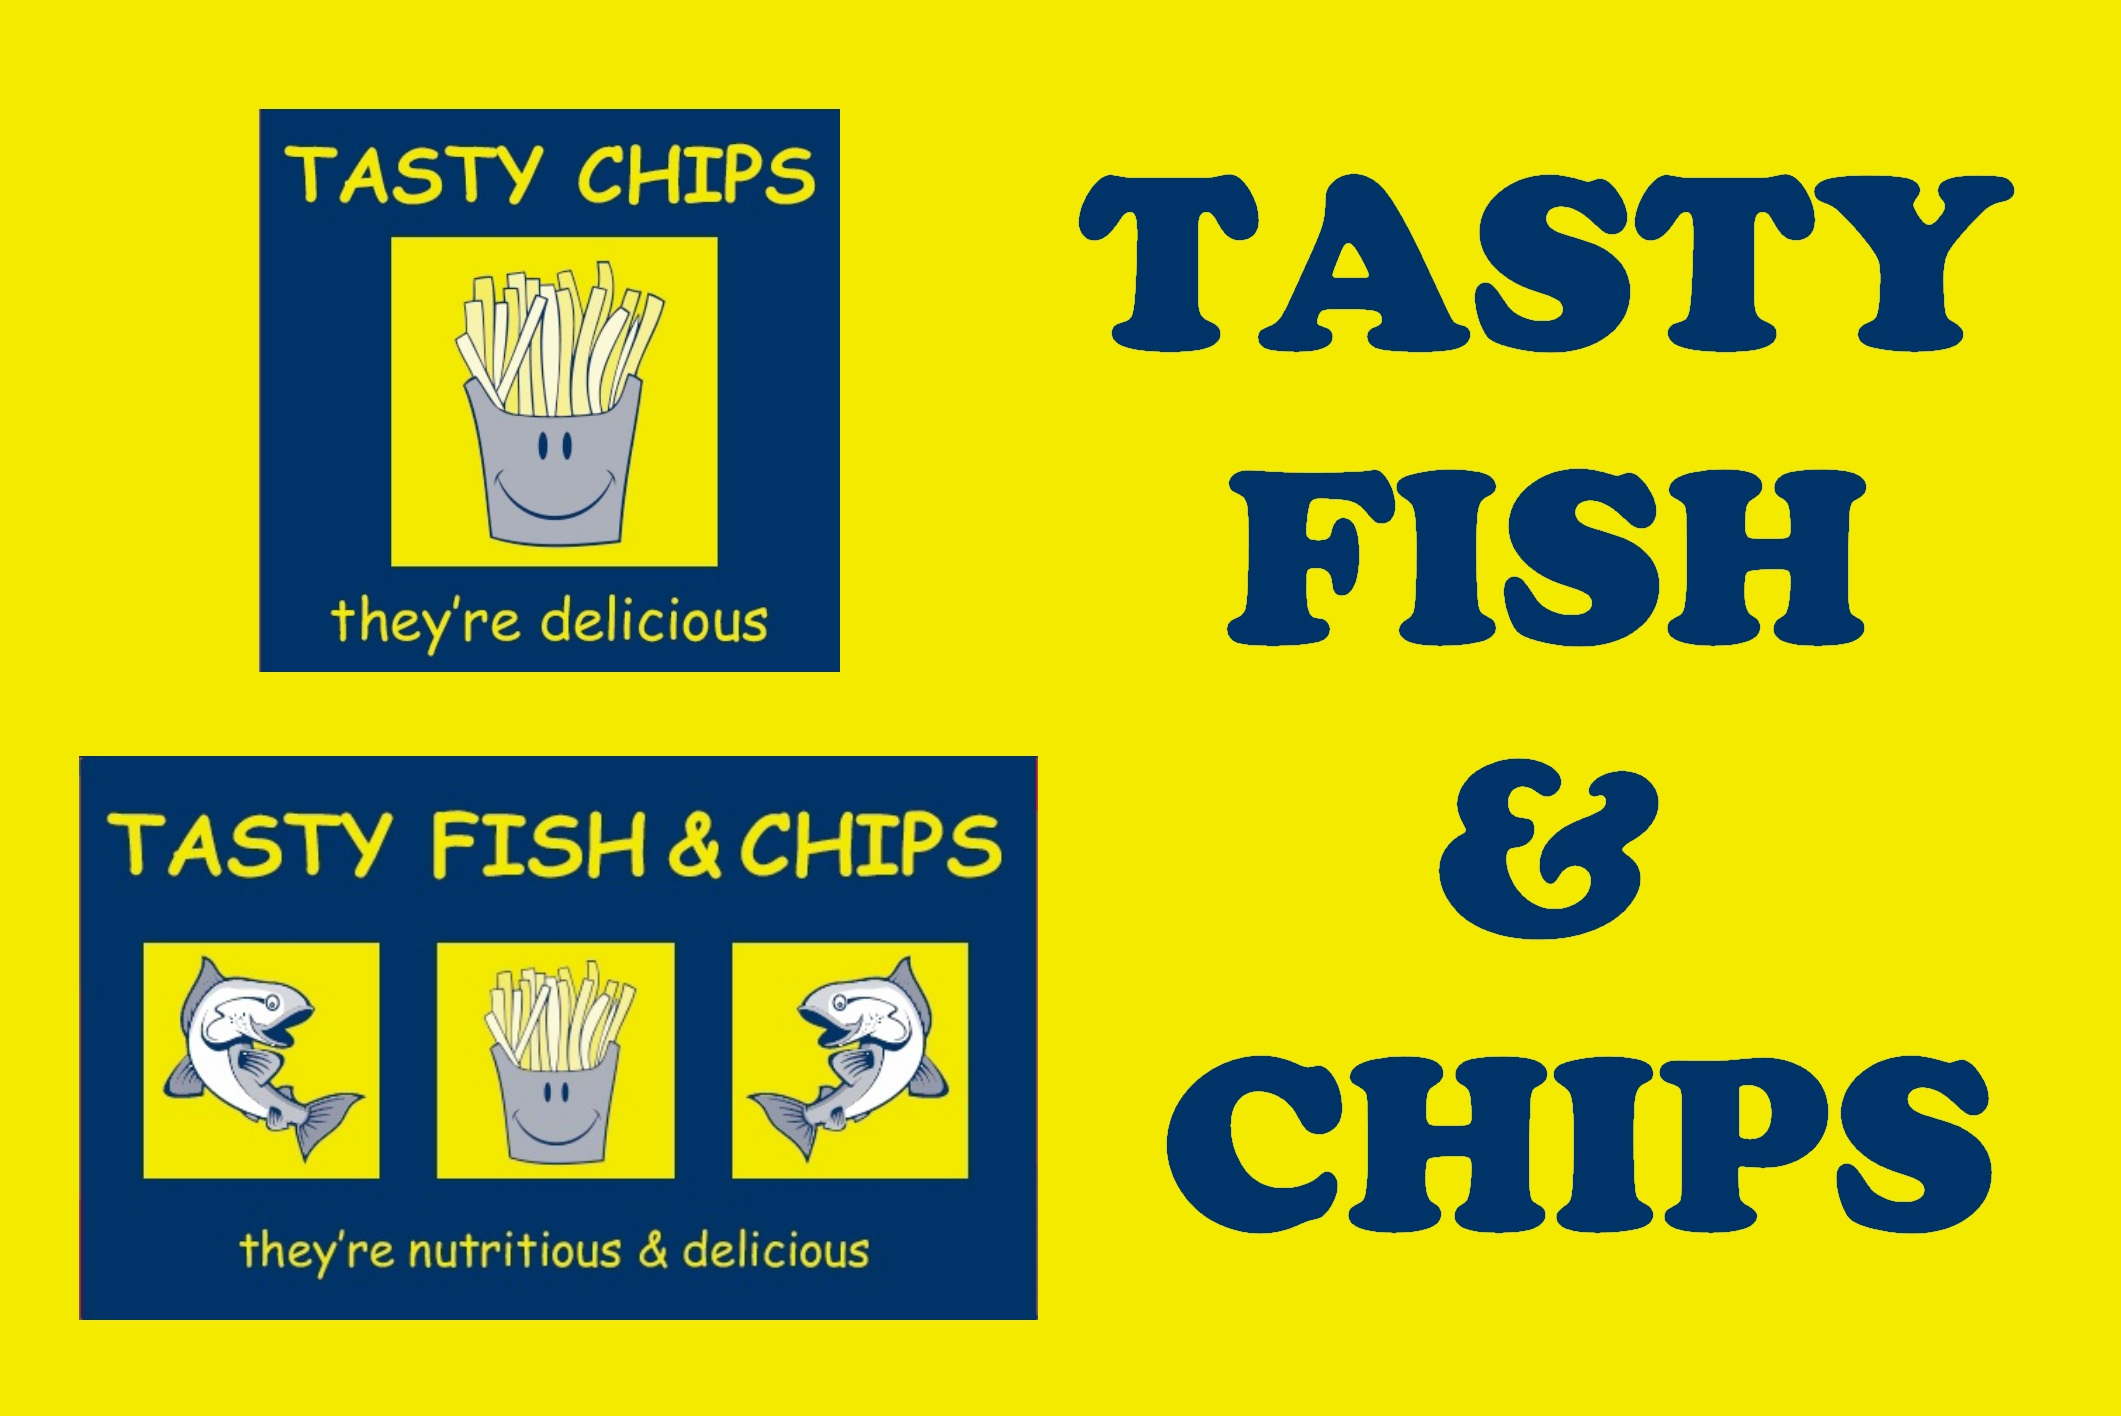 Tasty Fish & Chip Boxes